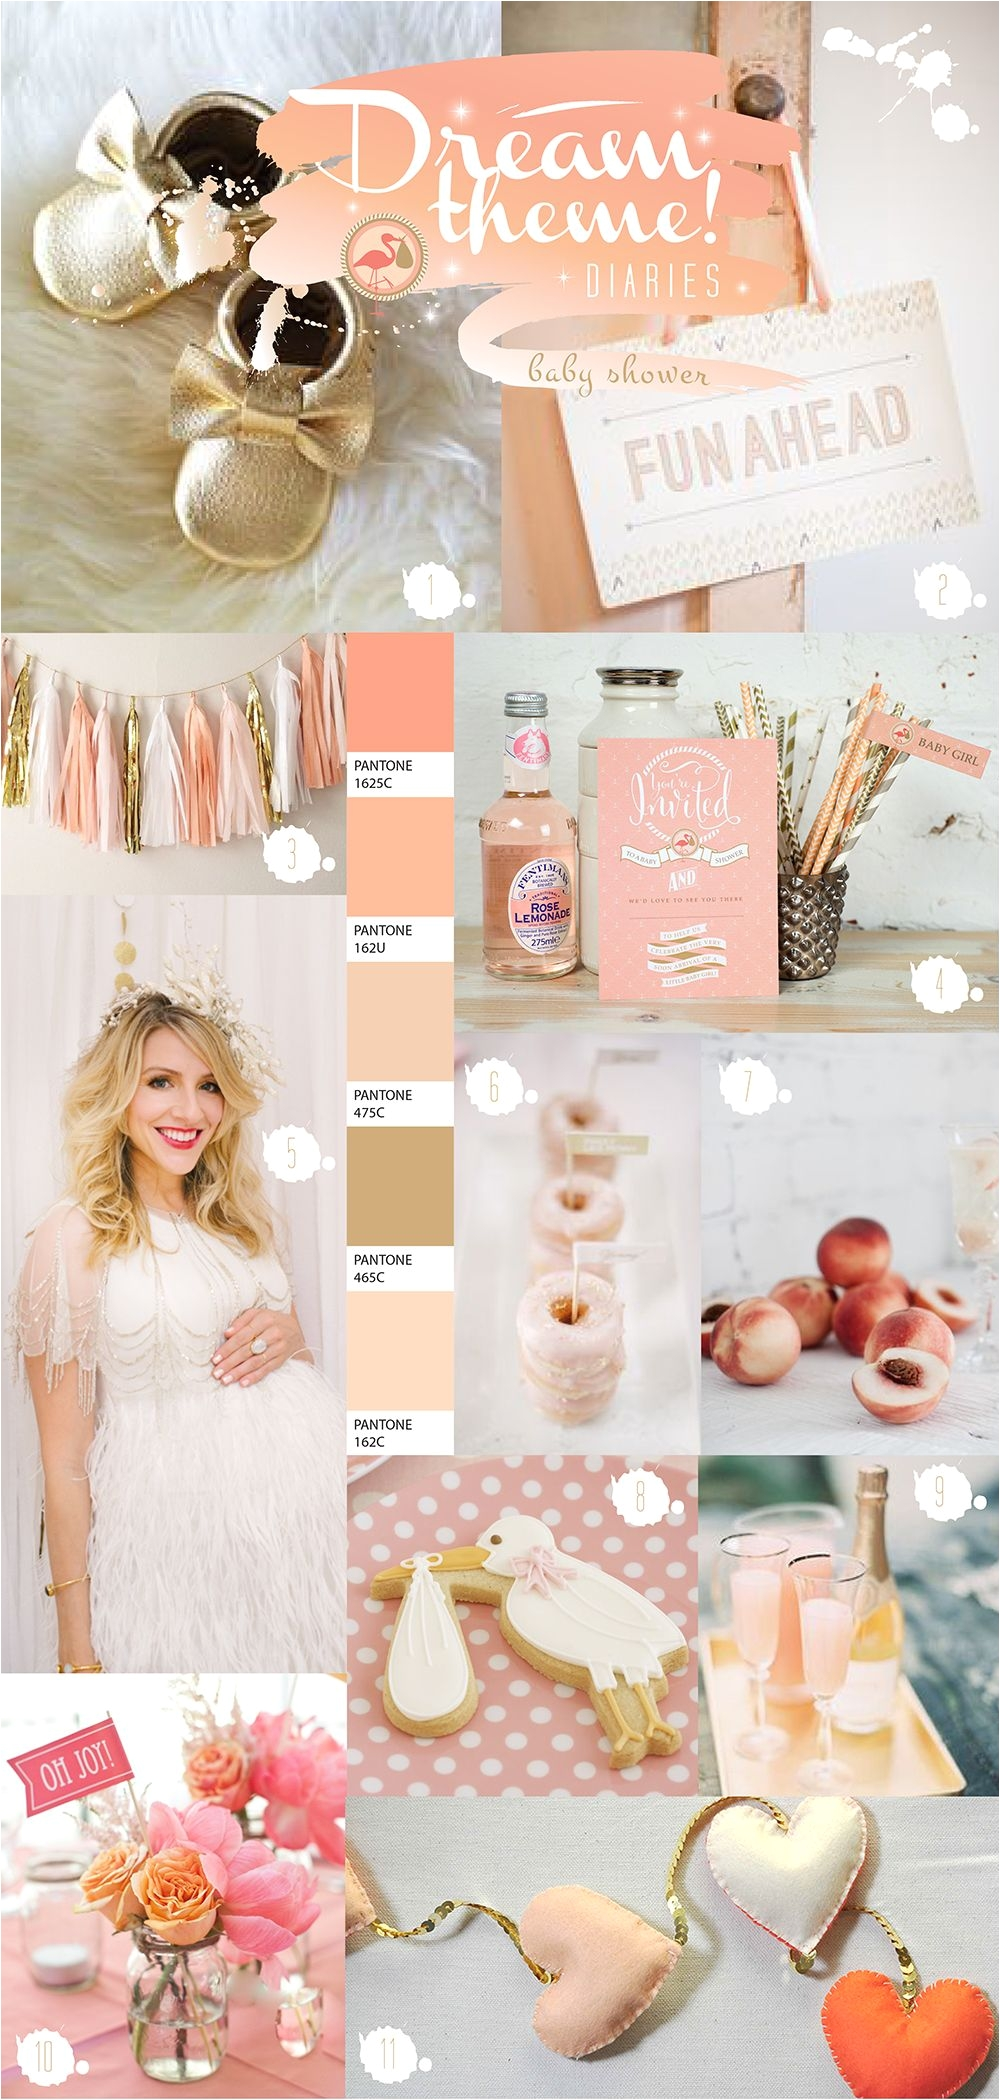 peach theme baby shower ideas by paperknots http www paperknots co uk peach baby shower